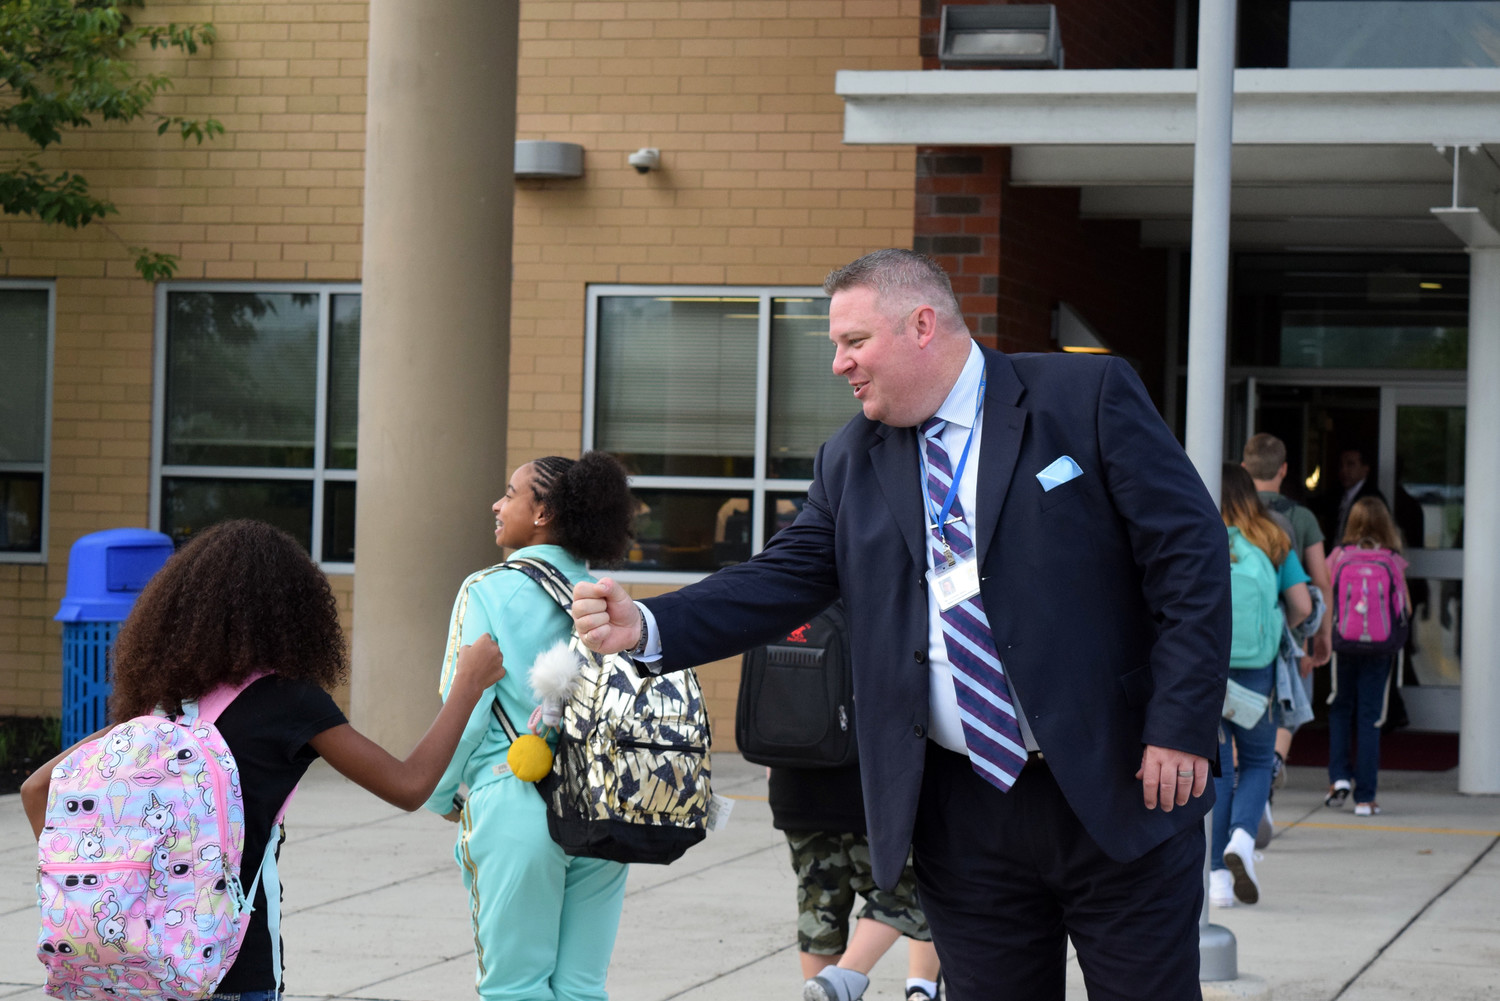 Chris Sattele, Middletown Area Middle School assistant principal, greets students as they enter MAMS on Monday